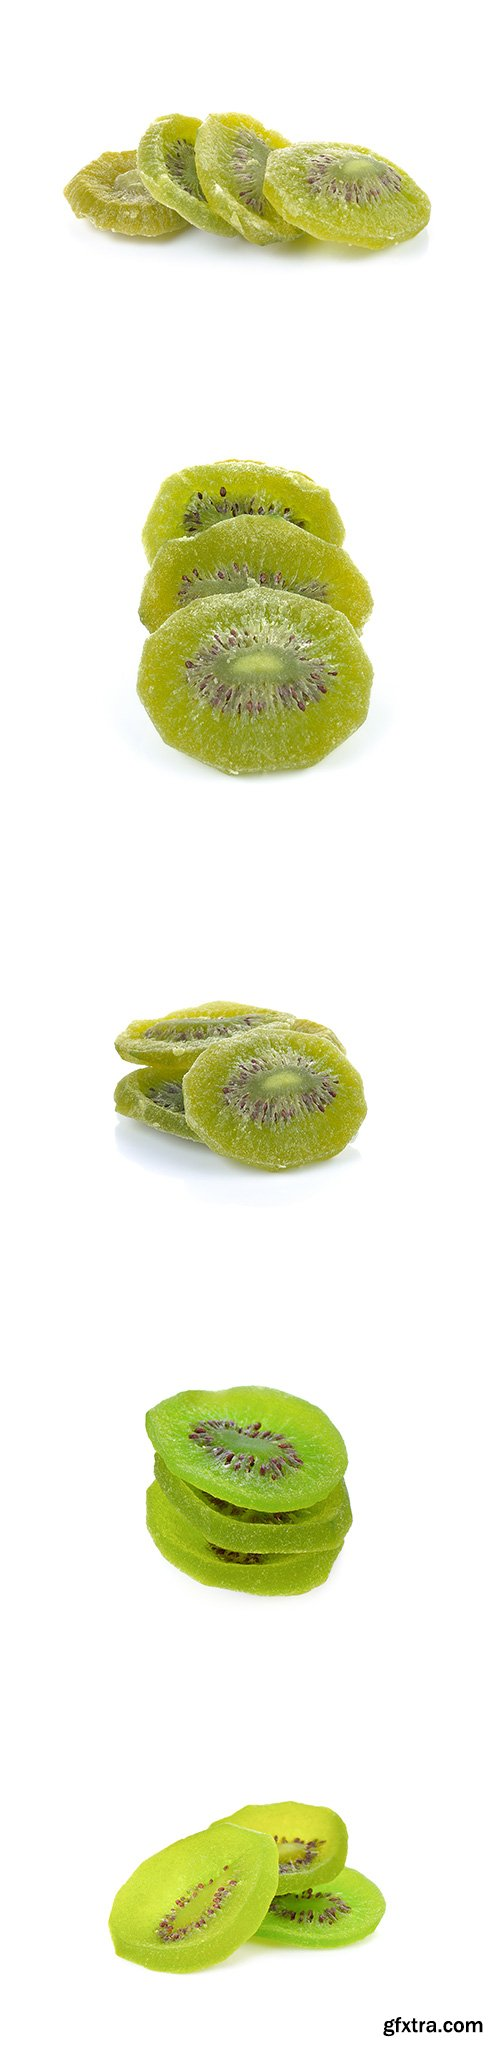 Dried Kiwi Isolated - 5xJPGs